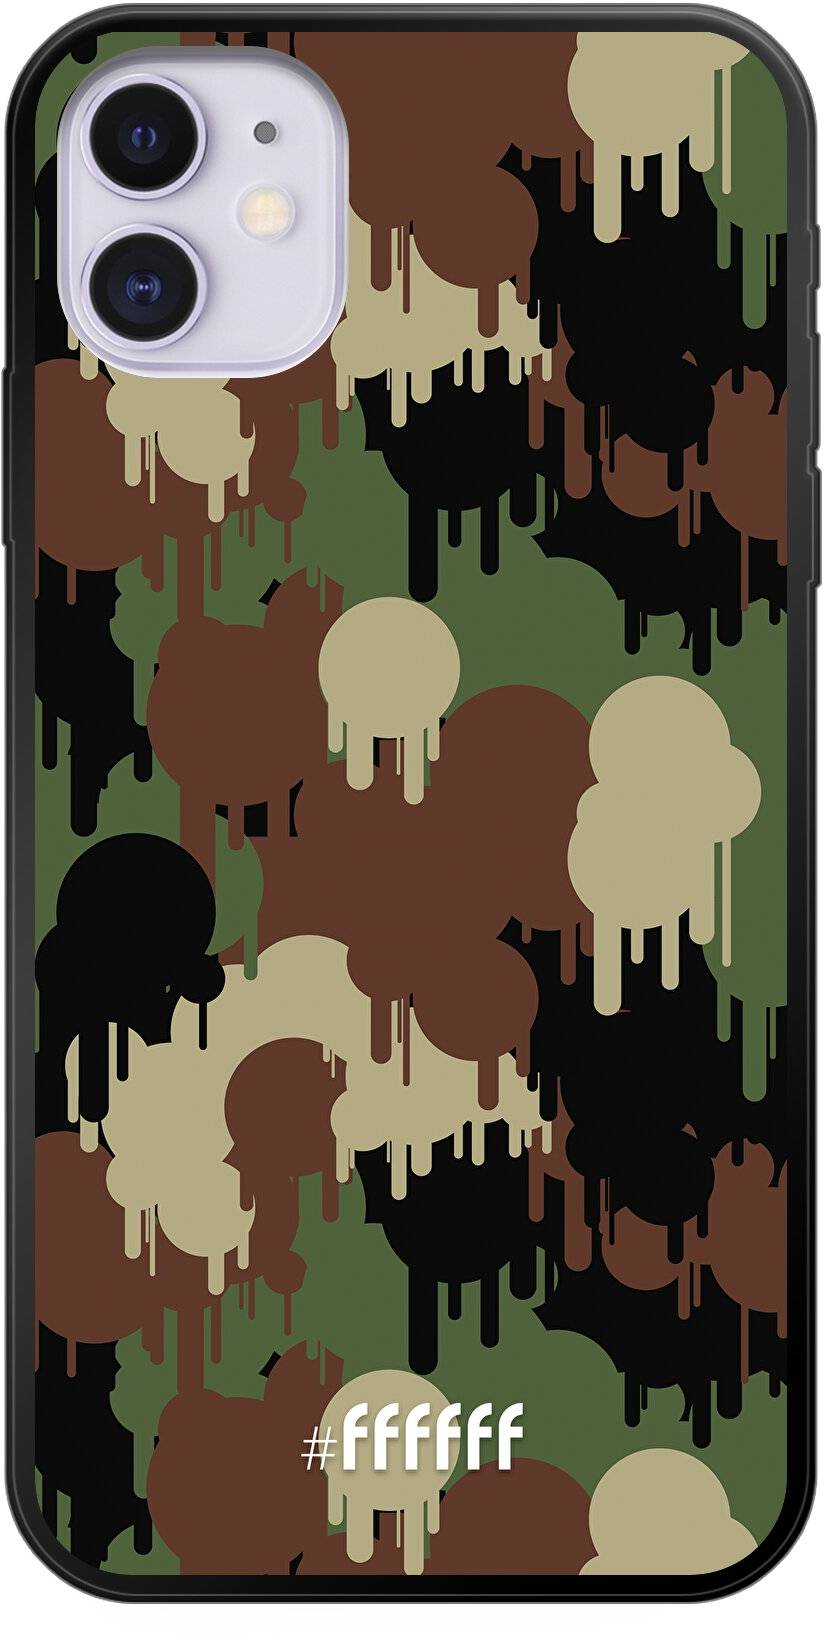 Graffiti Camouflage iPhone 11